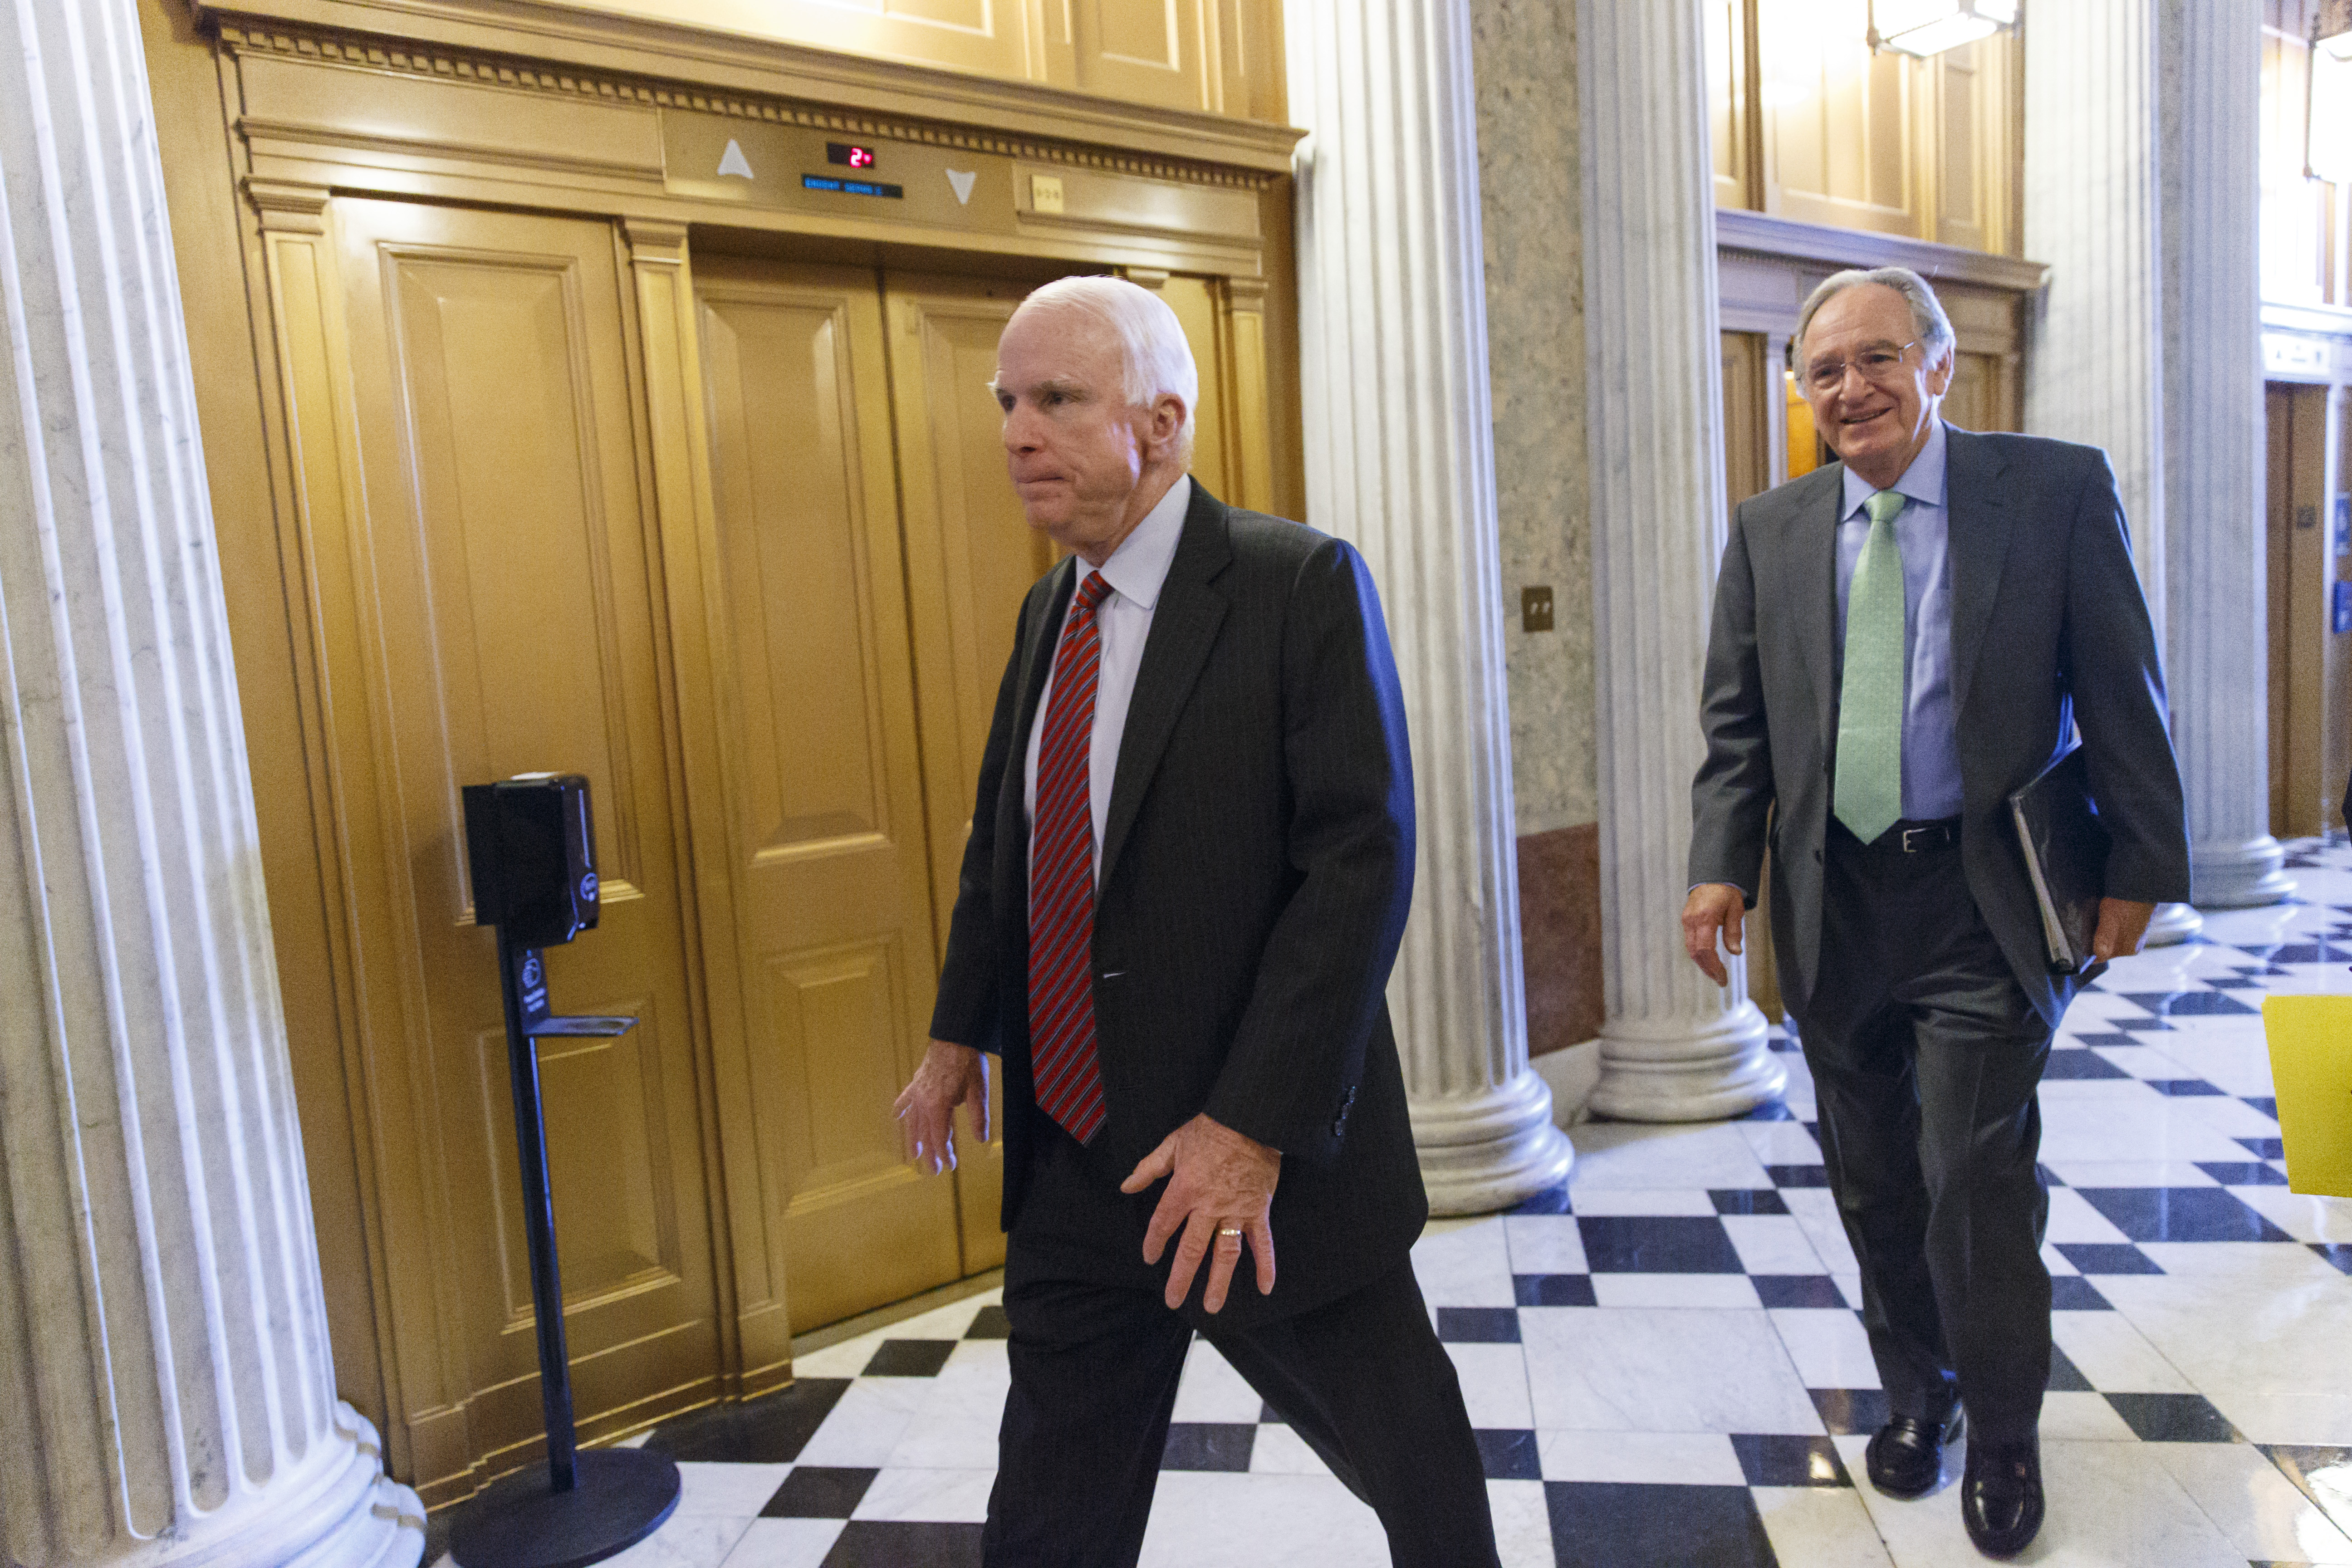 Sen. John McCain, R-Ariz., left, and Sen. Tom Harkin, D-Iowa, right, and other senators come and go from the chamber during votes at the Capitol in Washington, Tuesday, Feb. 25, 2014.